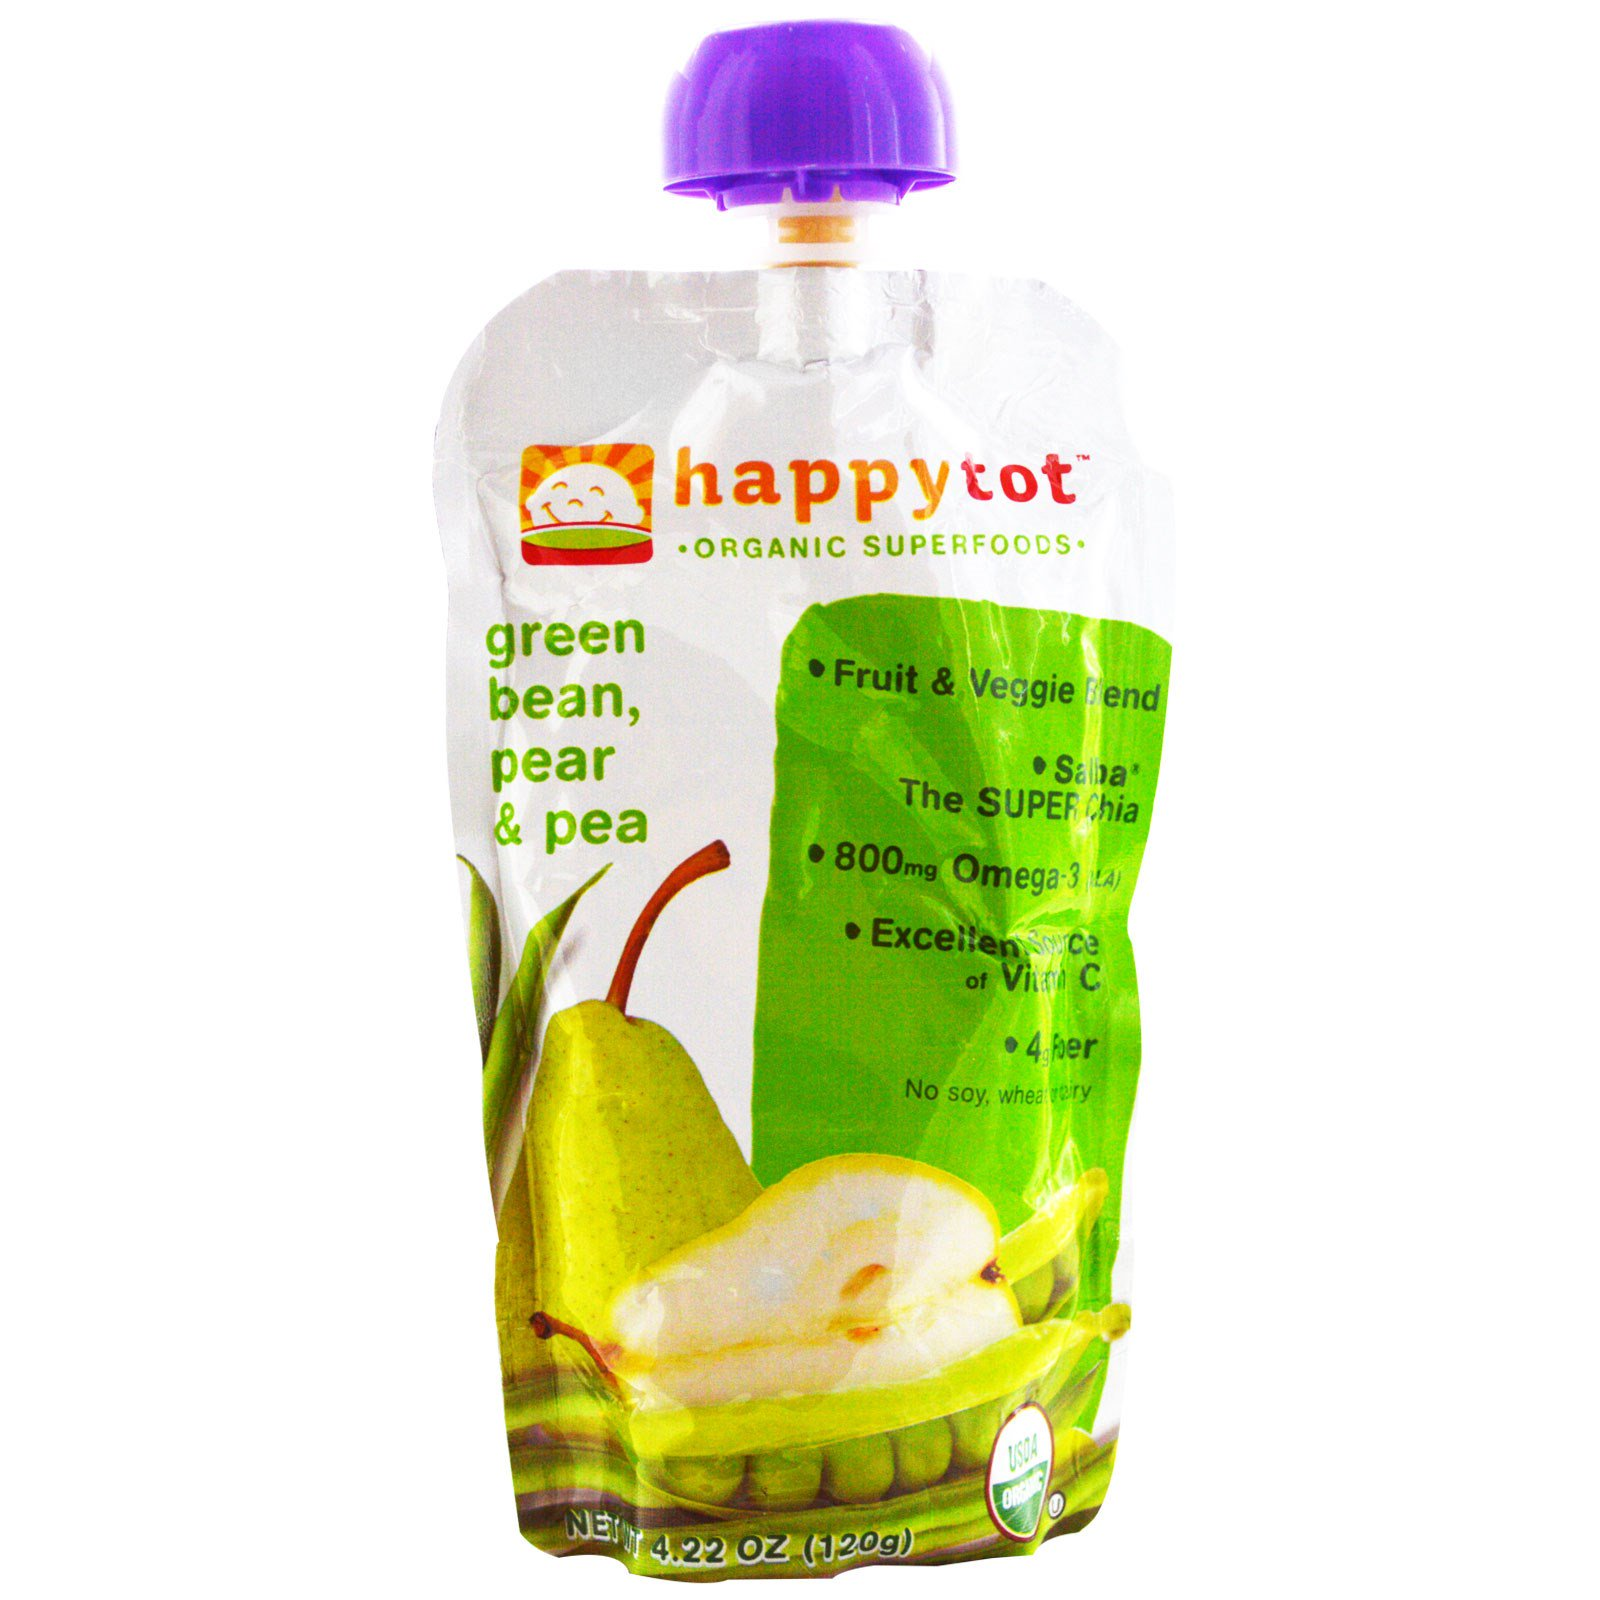 Nurture Inc. (Happy Baby), happytot, Organic Superfoods, Green Bean, Pear and Pea, 4.22 oz (pack of 2)